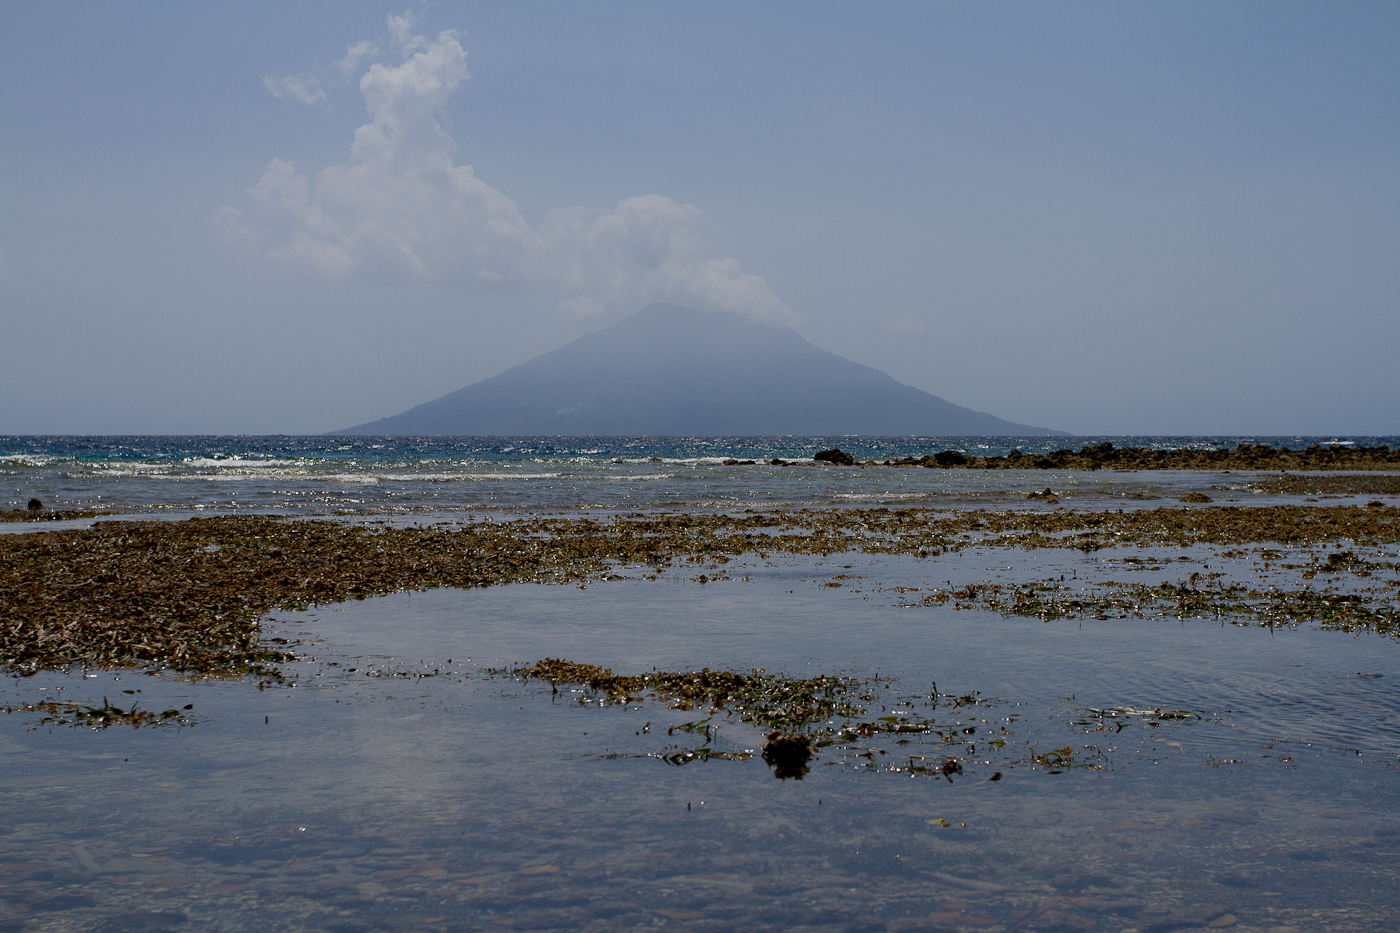 Volcano in the distance, Halmahera